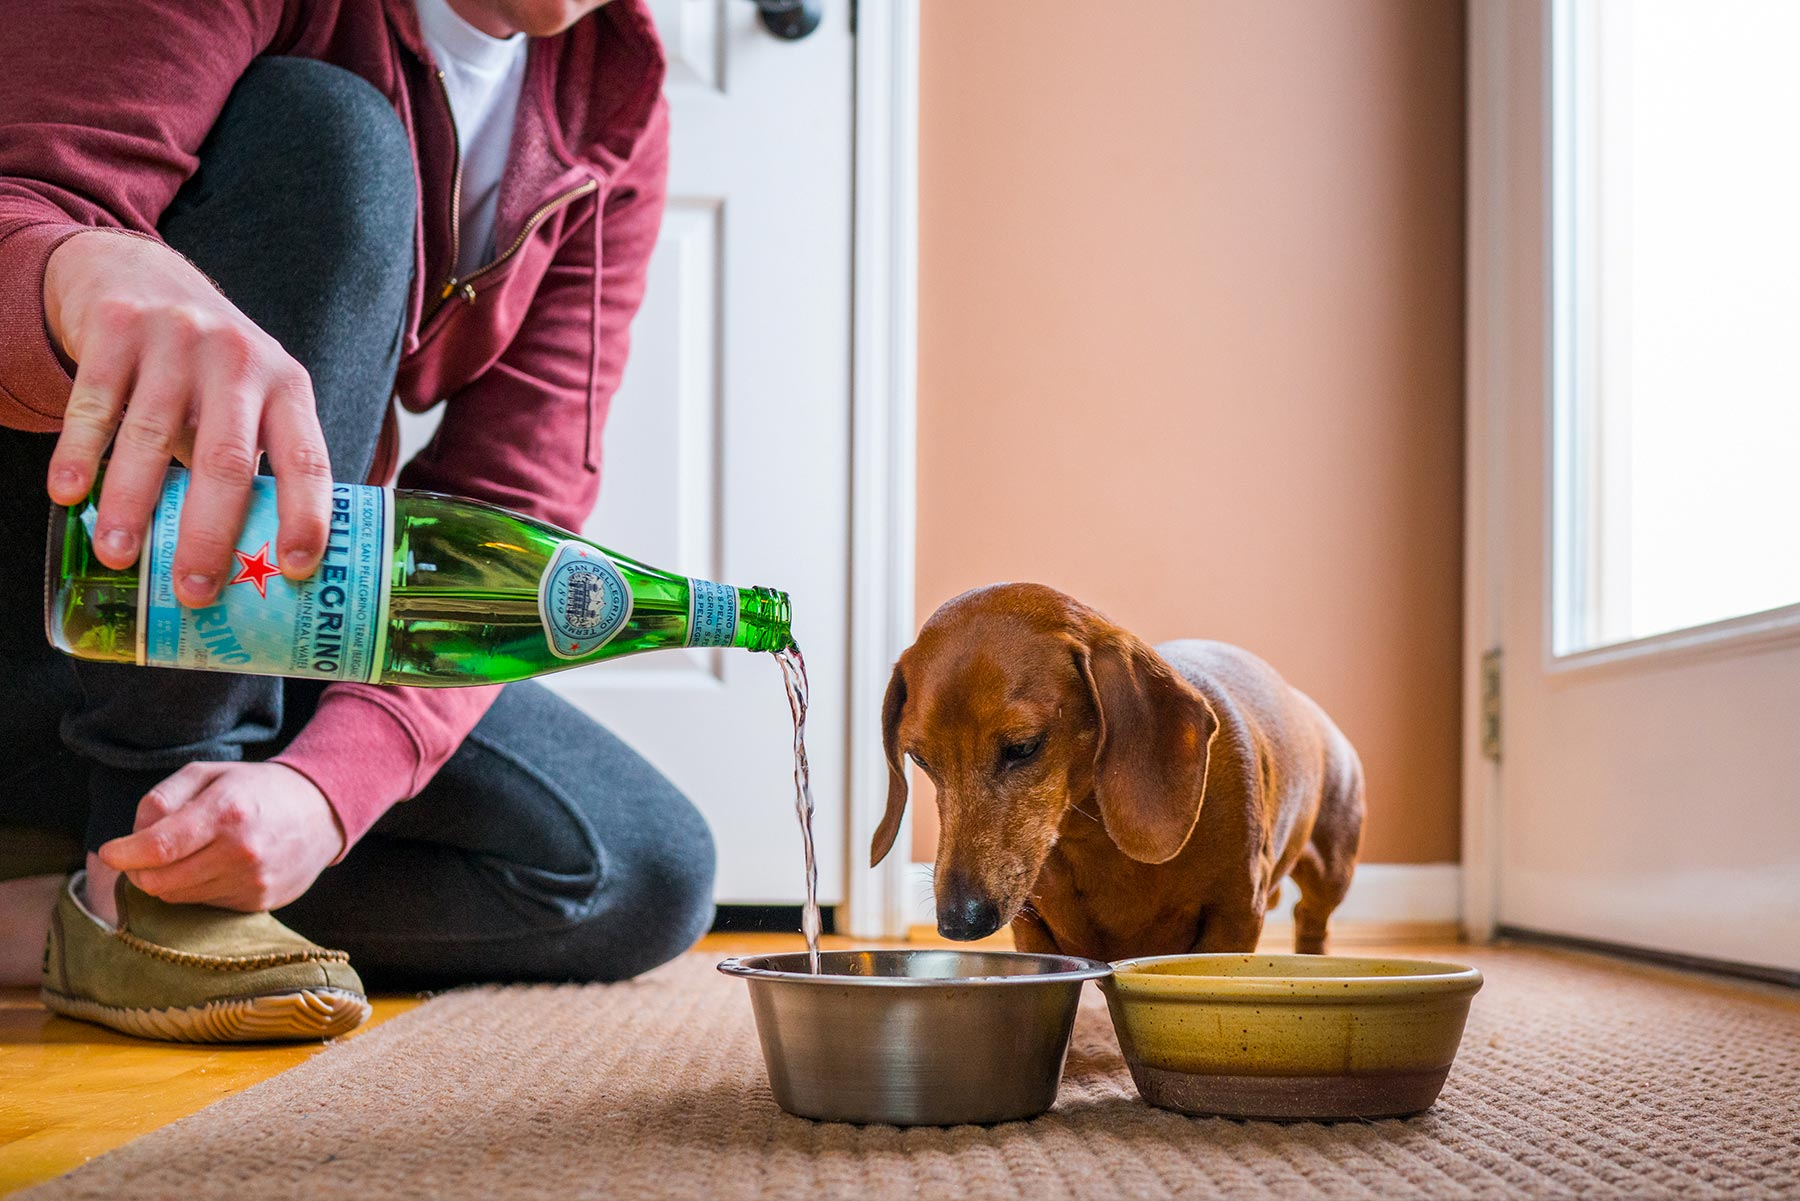 A-young-man-giving-his-Dachshund-water-from-a-bottle